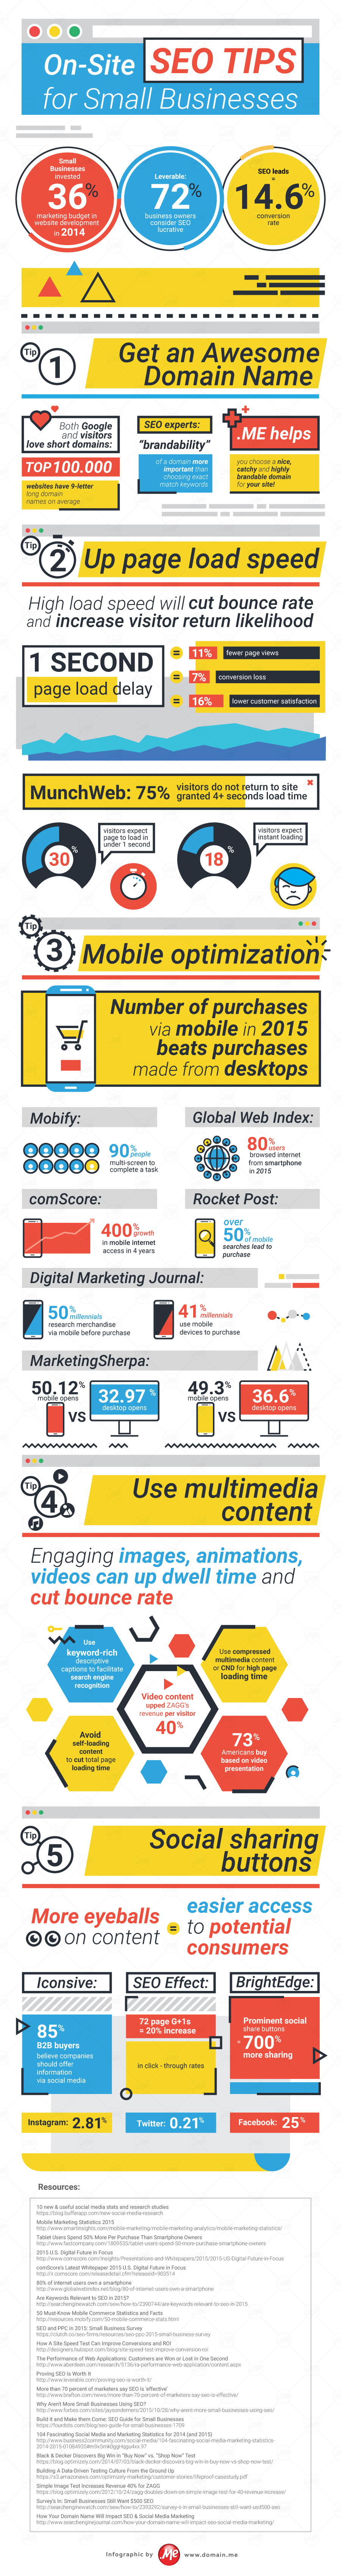 INFOGRAPHIC - On-Site SEO Tips for Small Businesses